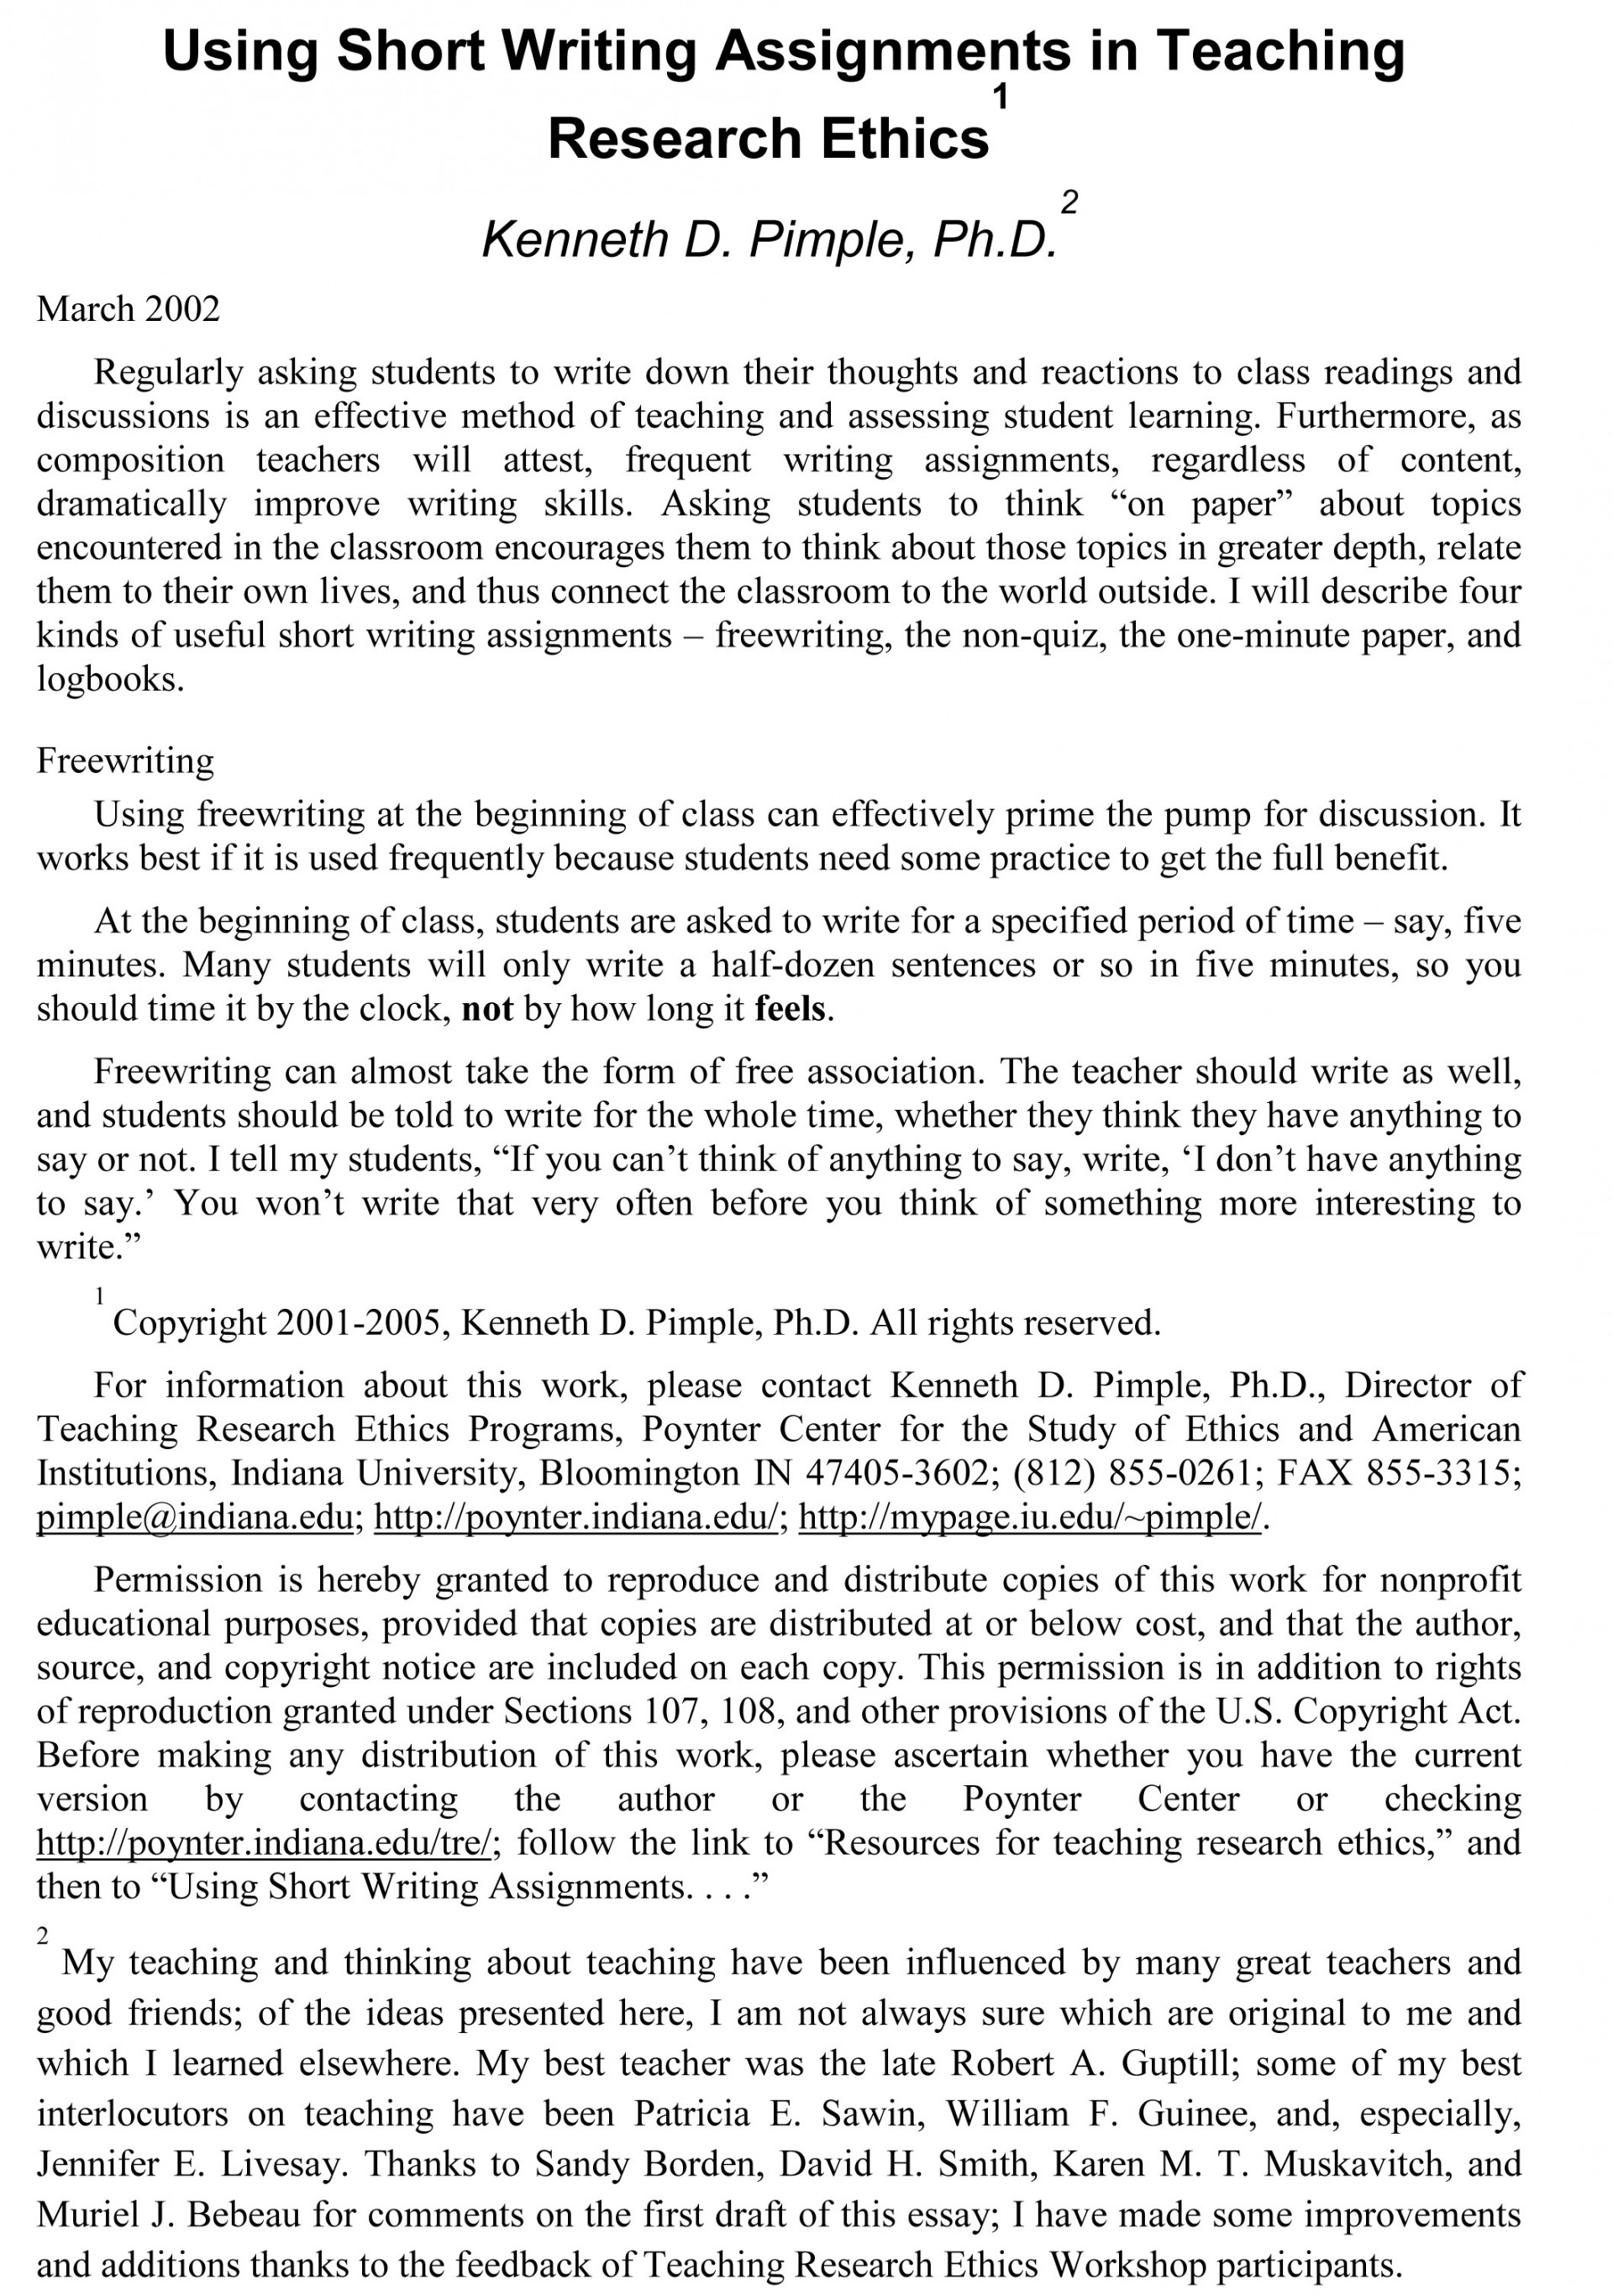 008 Essay Example Sample Teaching College Essays About Exceptional Music Country Rock 1920